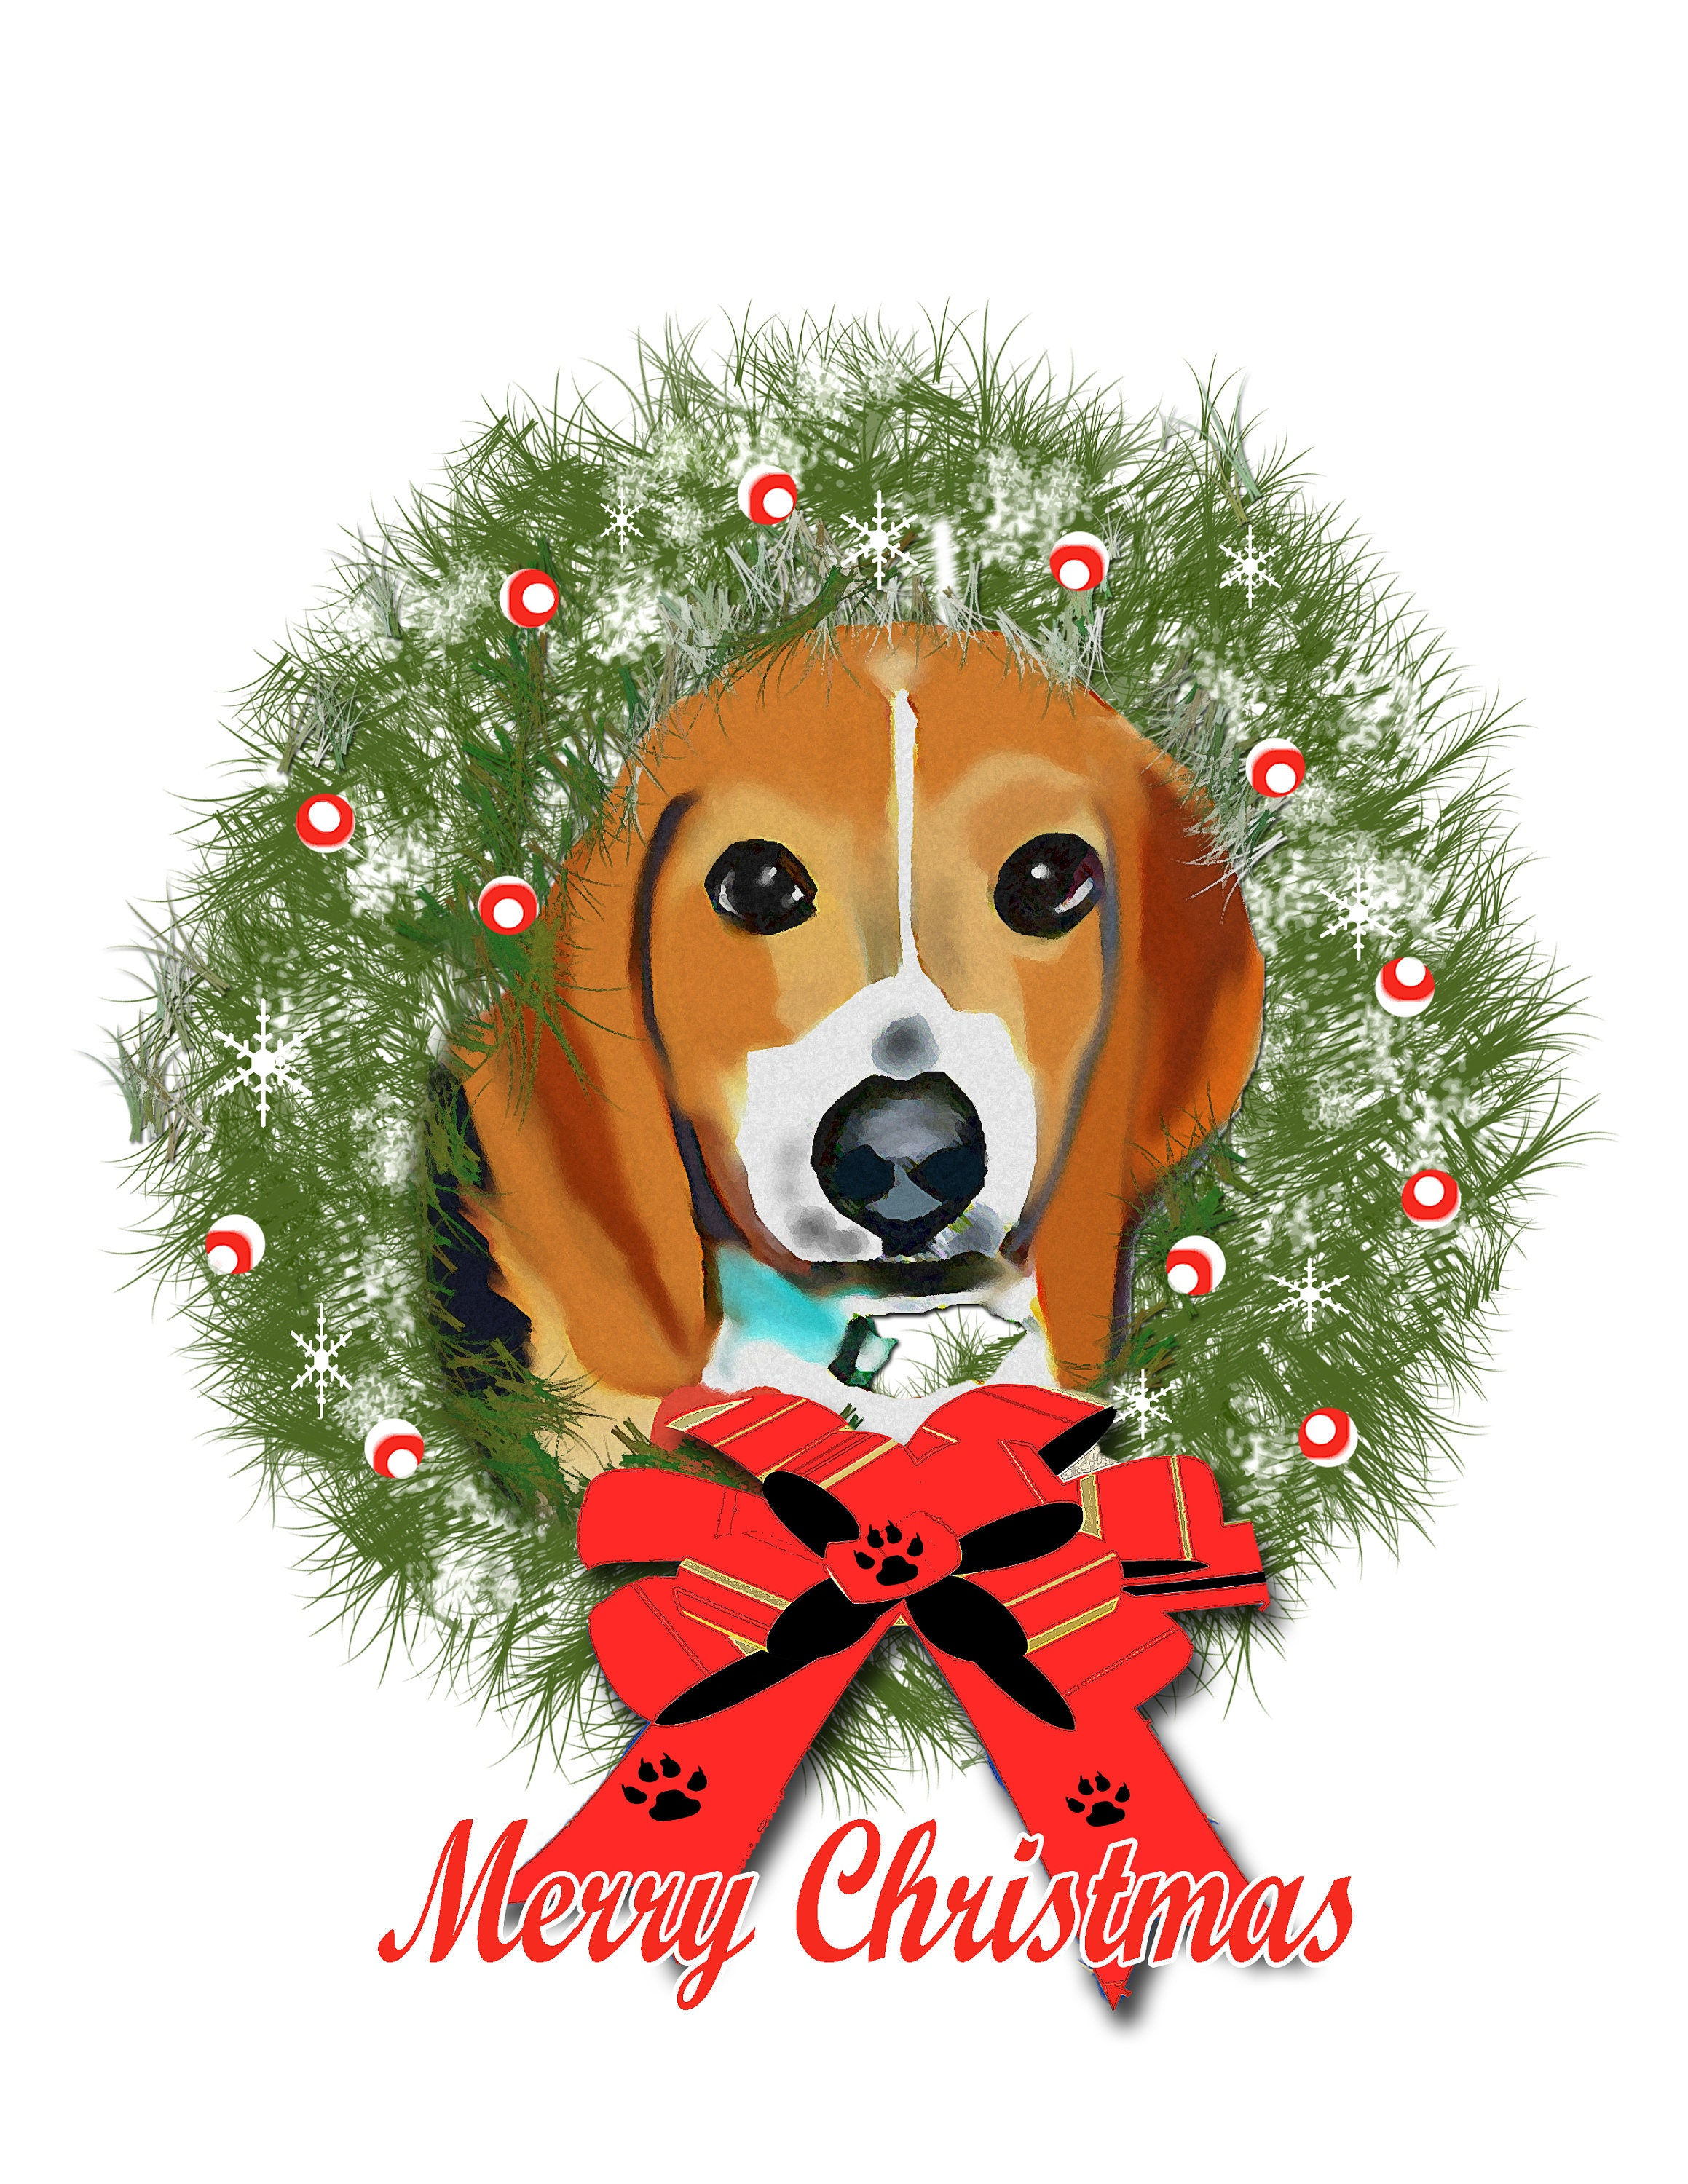 Beagle Christmas Wreath Blank Greeting Cards | Etsy